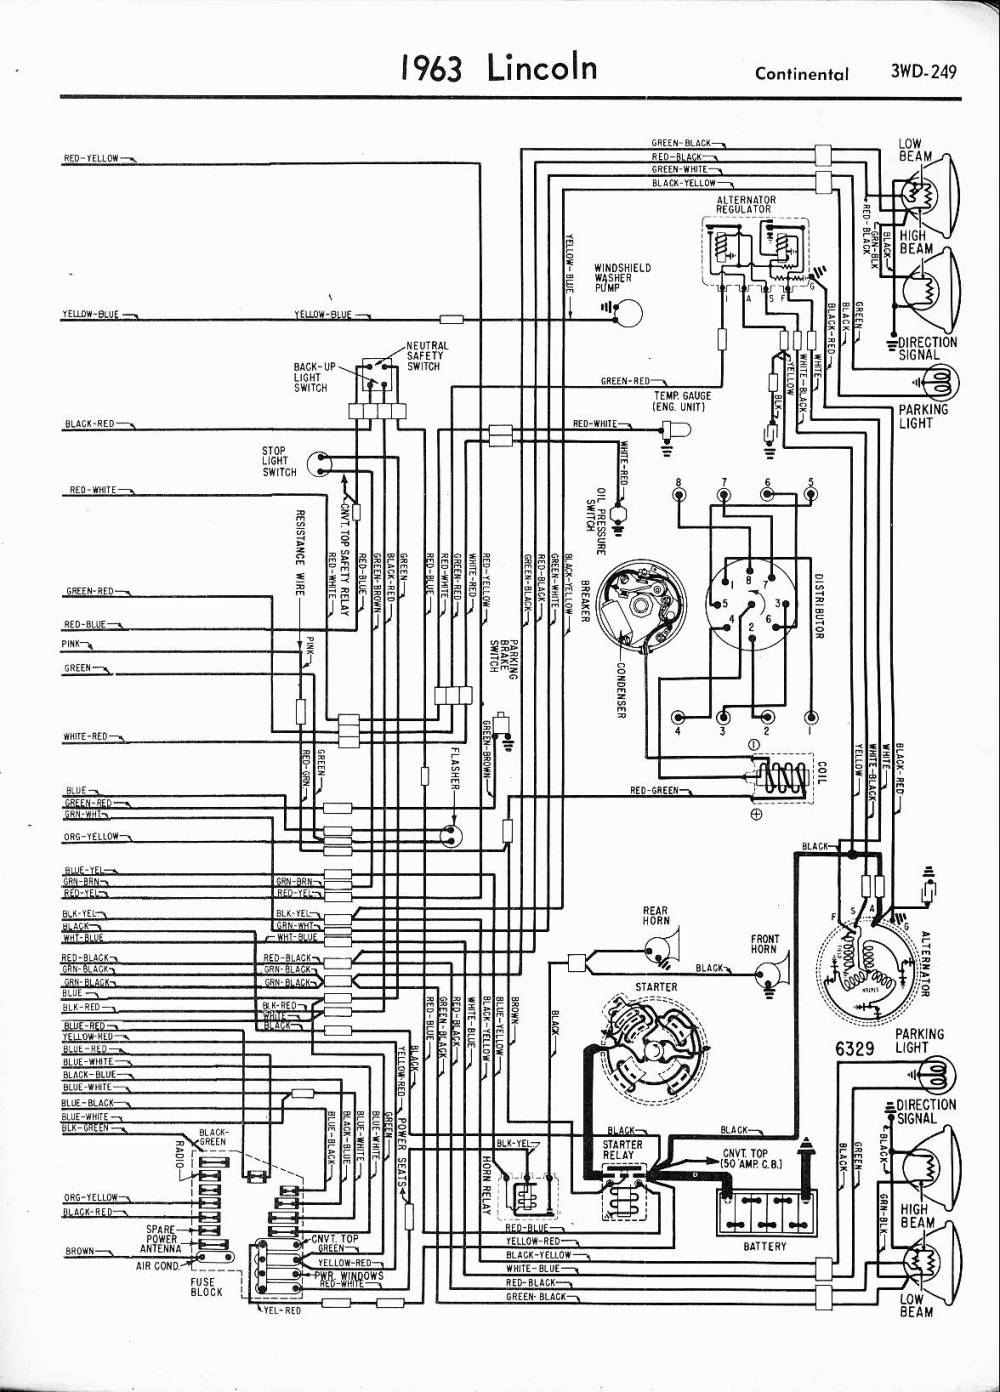 medium resolution of 1964 lincoln fuse box wiring diagram detailed rh 20 9 5 gastspiel gerhartz de 1964 lincoln